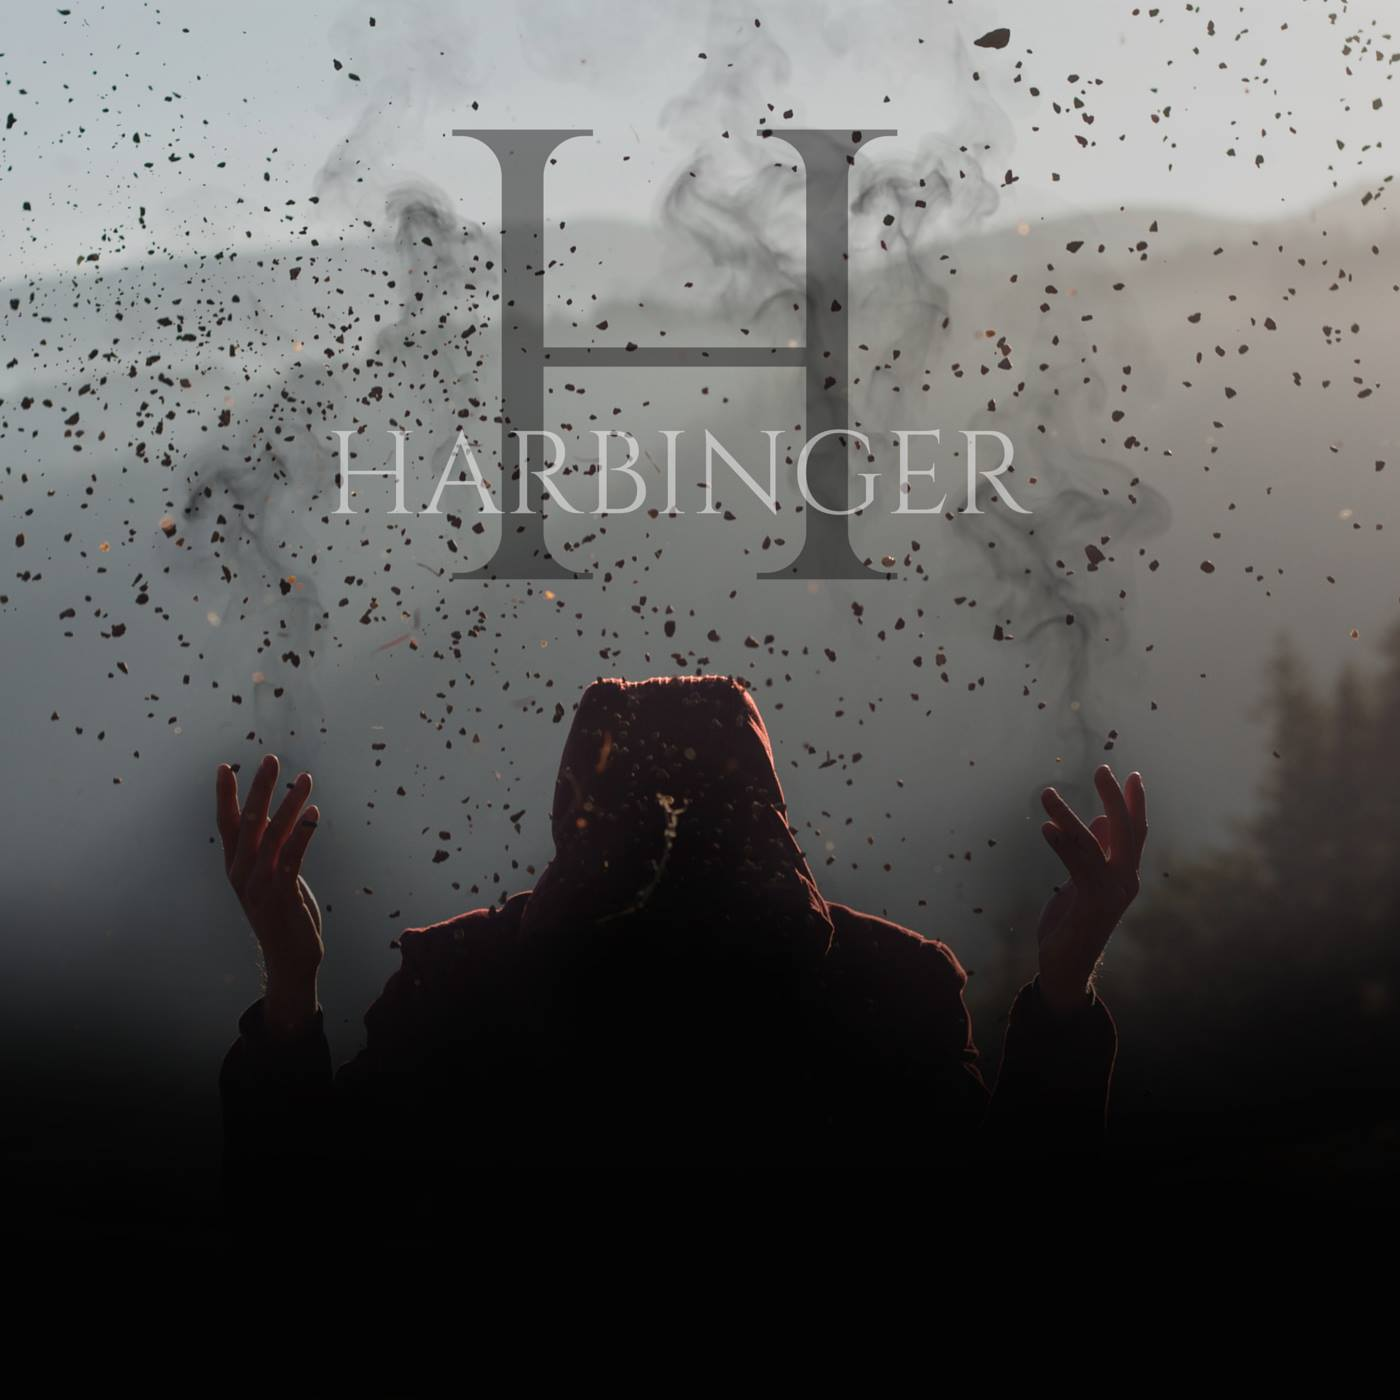 Harbinger - Altered States [Debut Single] (2016)